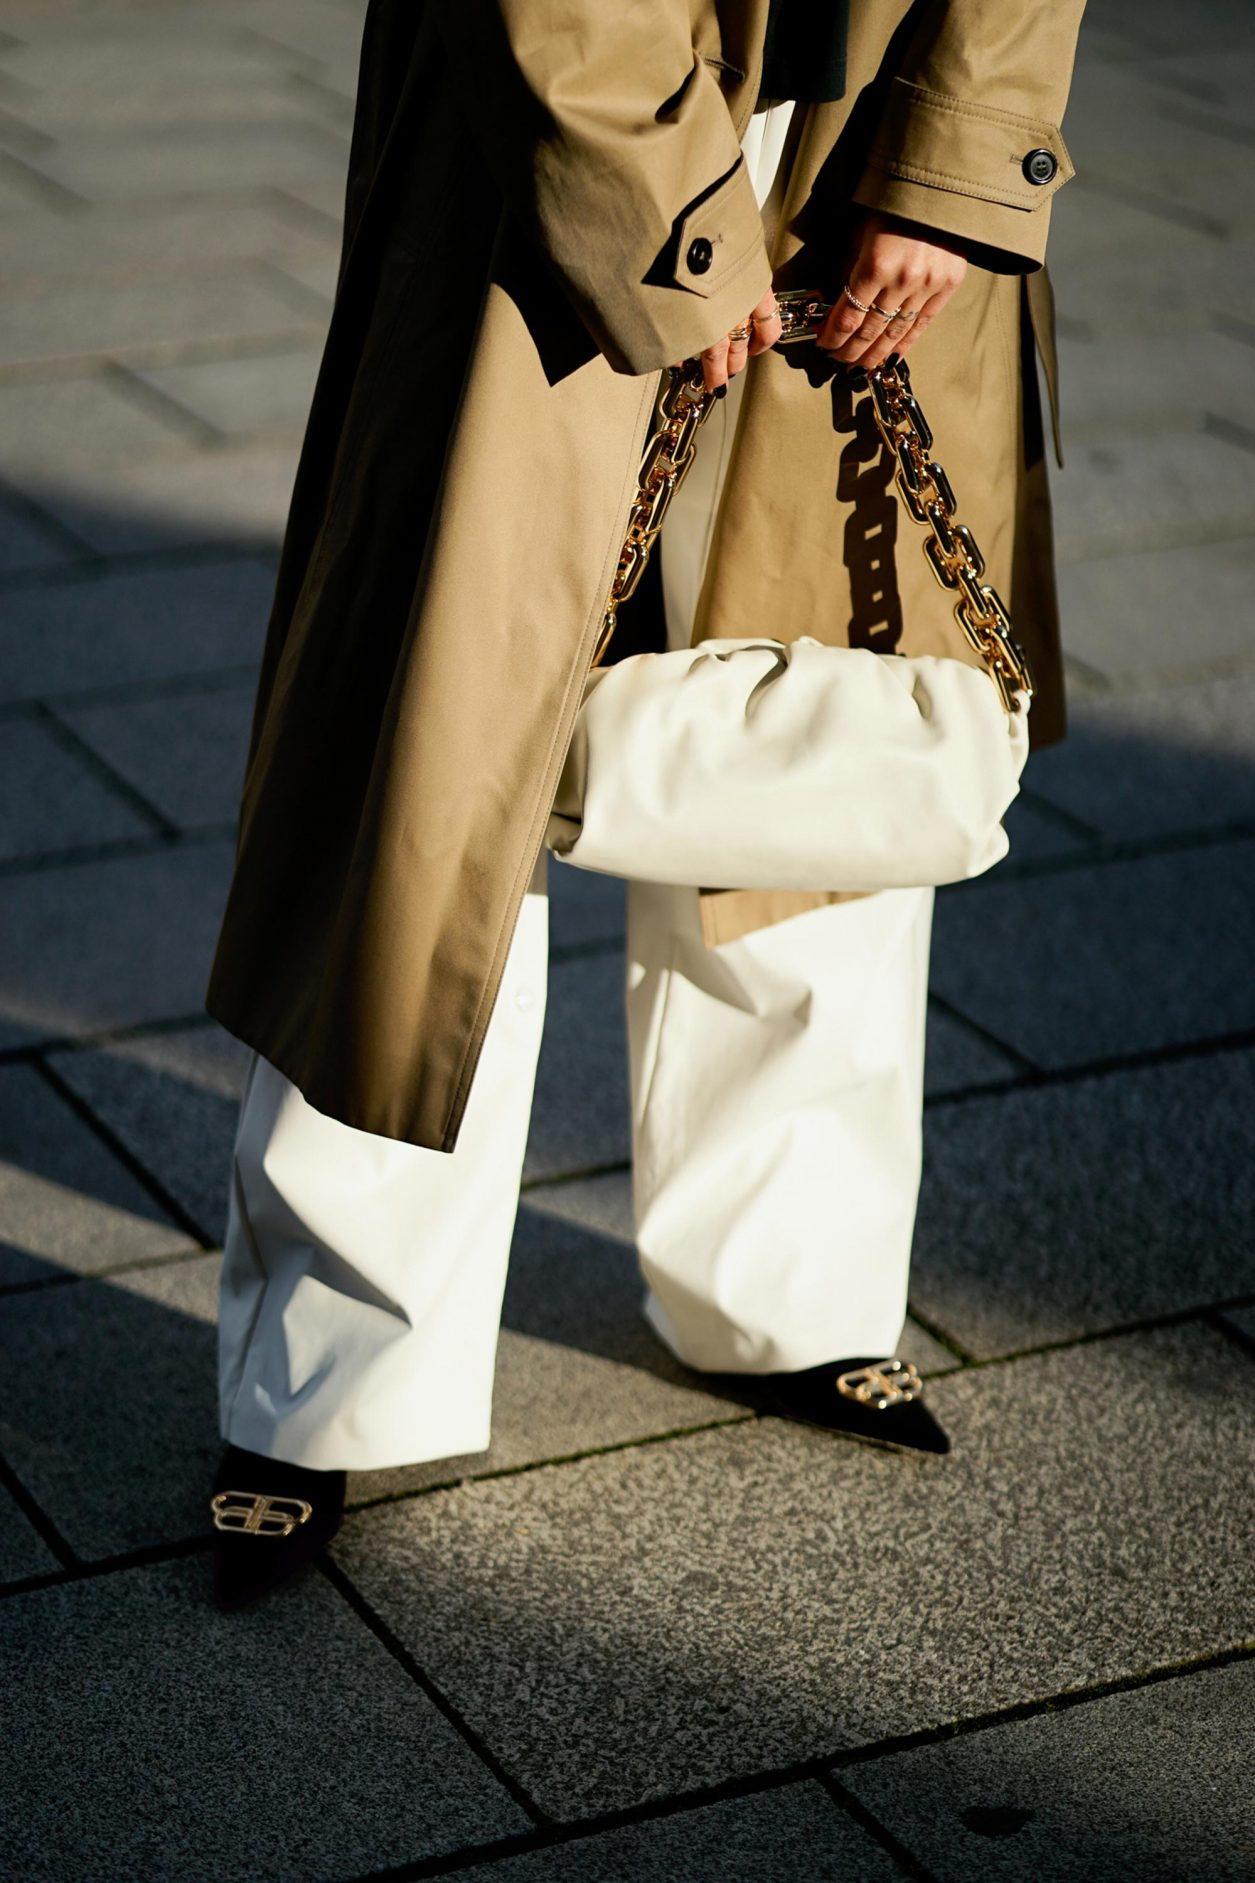 Streetstyle by Masha Sedgwick | Fashion blogger from Berlin, Germany | Spring outfit inspiration: wearing beige Saint Laurent trench coat, white Maison Margiela pants, the white Bottega Venetta chain pouch, black Balenciaga pumps